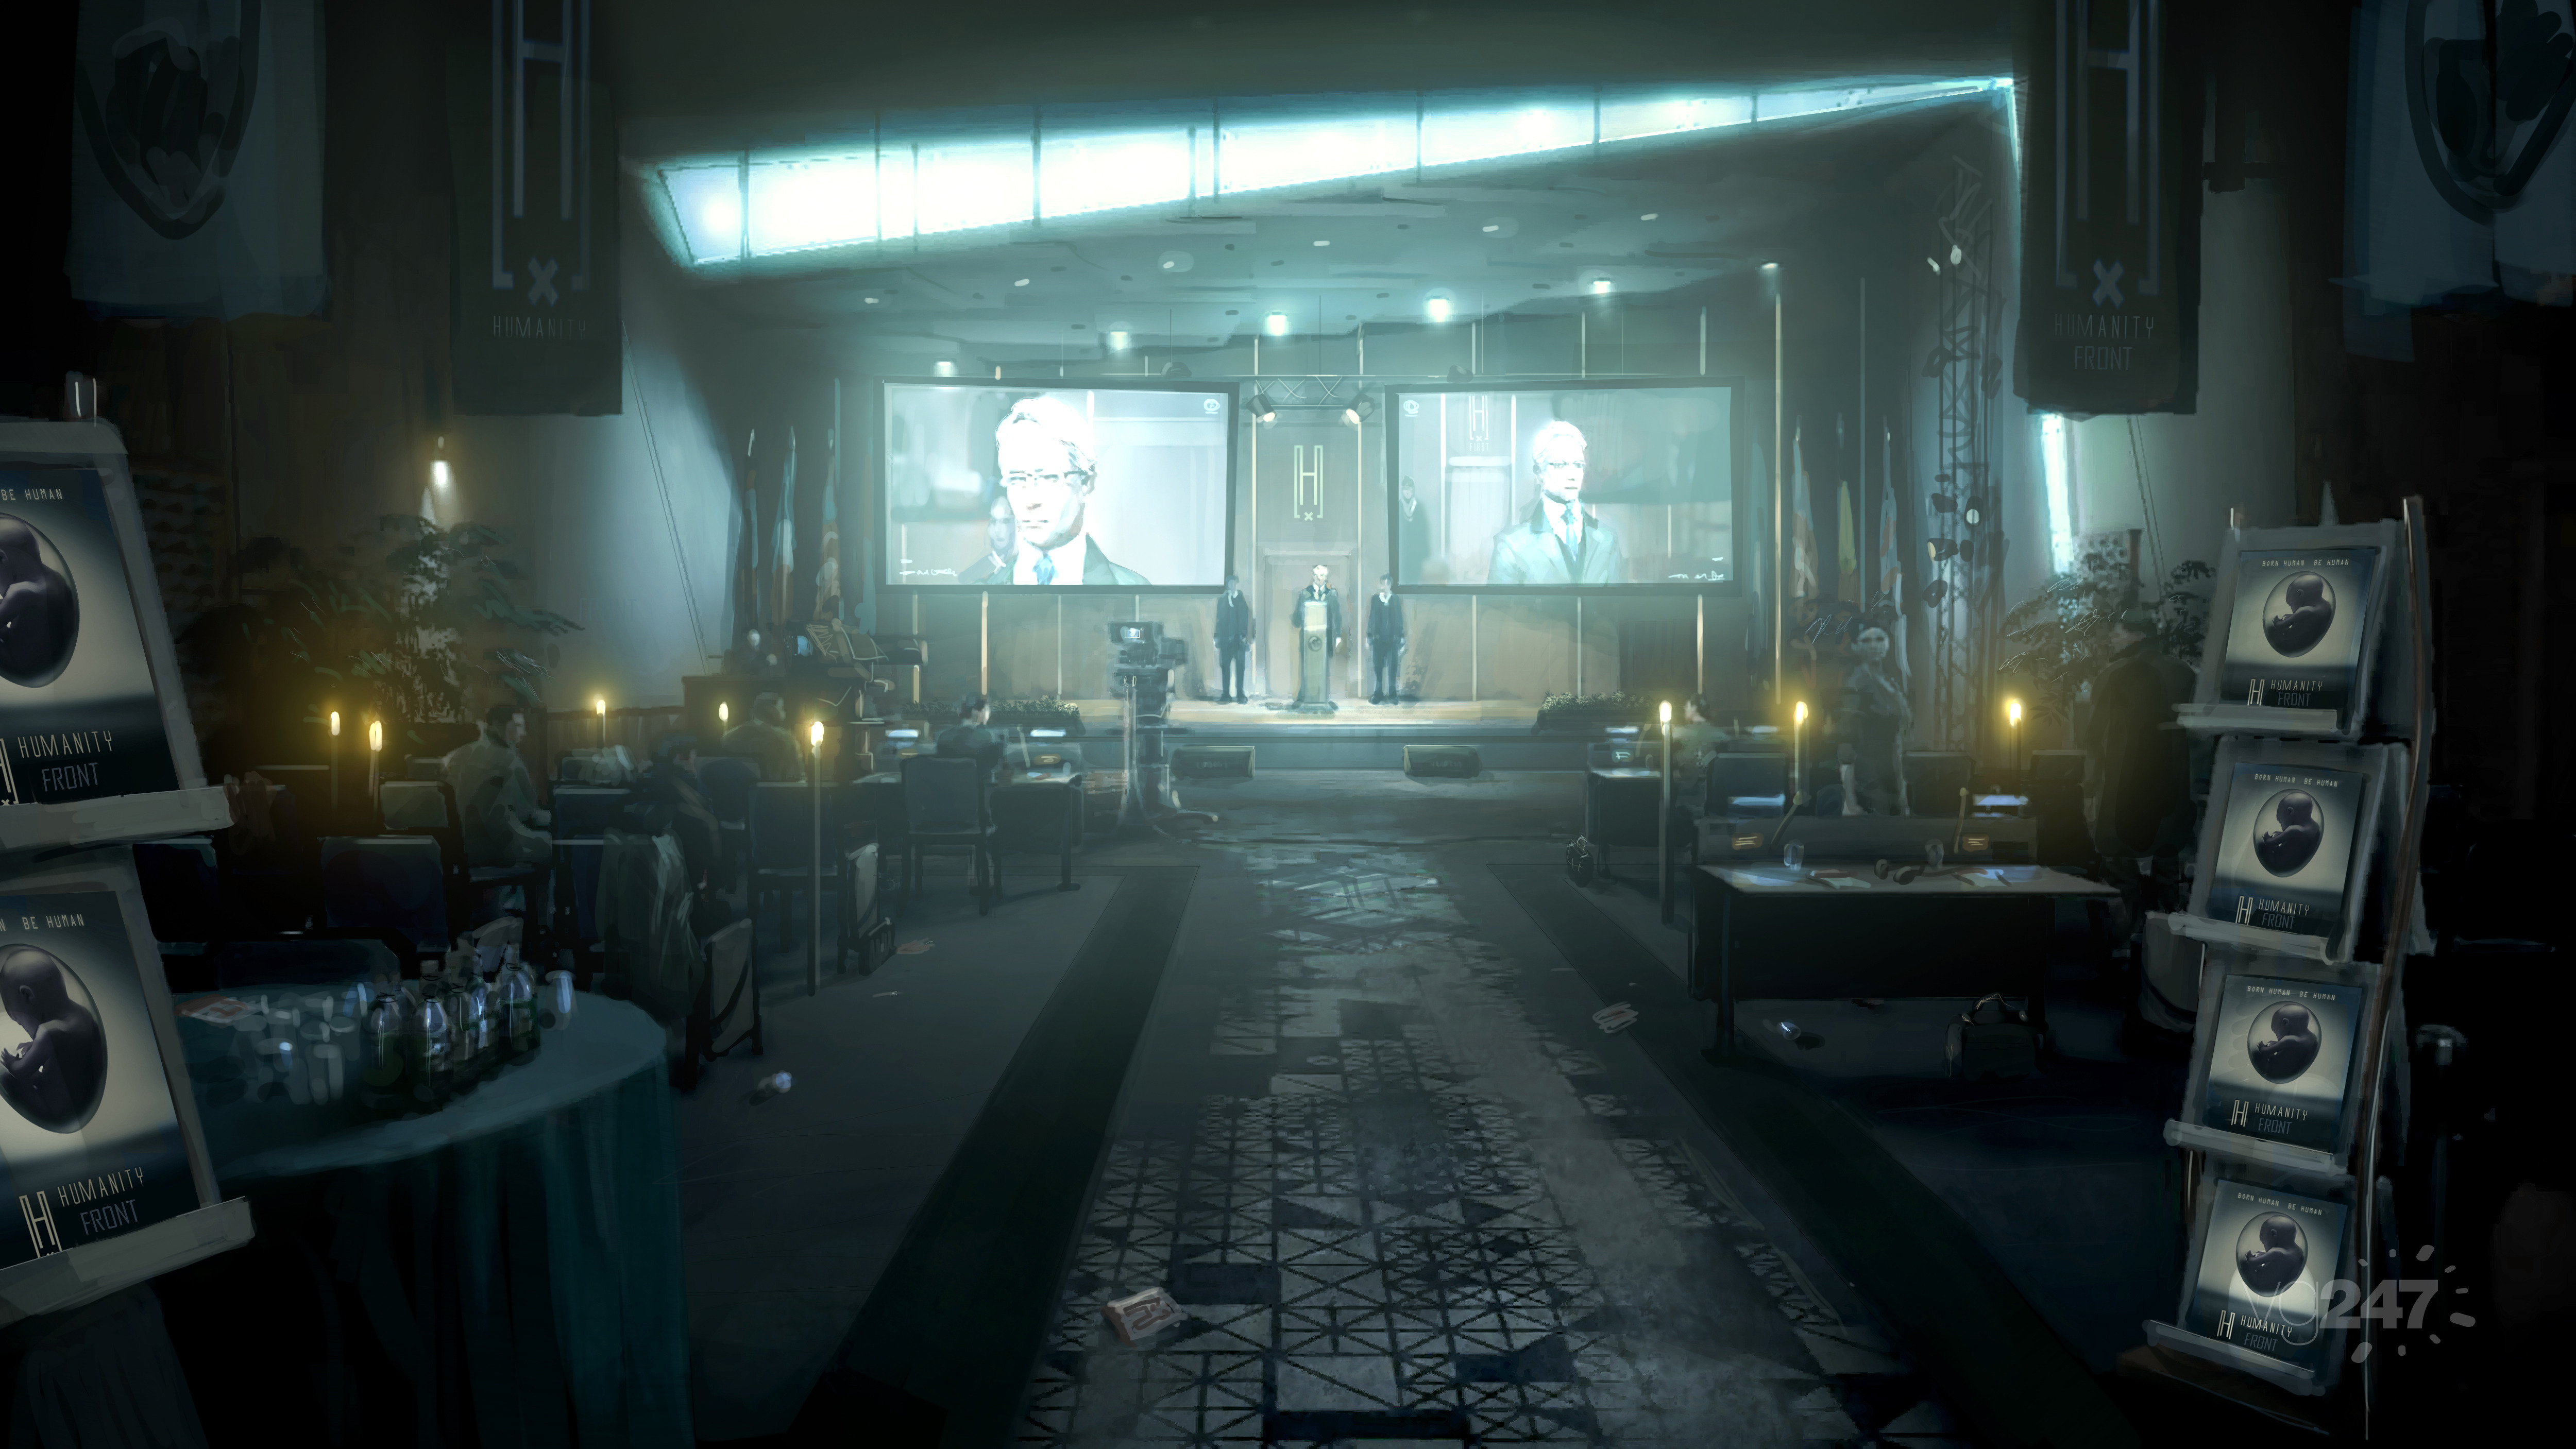 Square Releases Hd English Tgs Trailer New Shots And Art